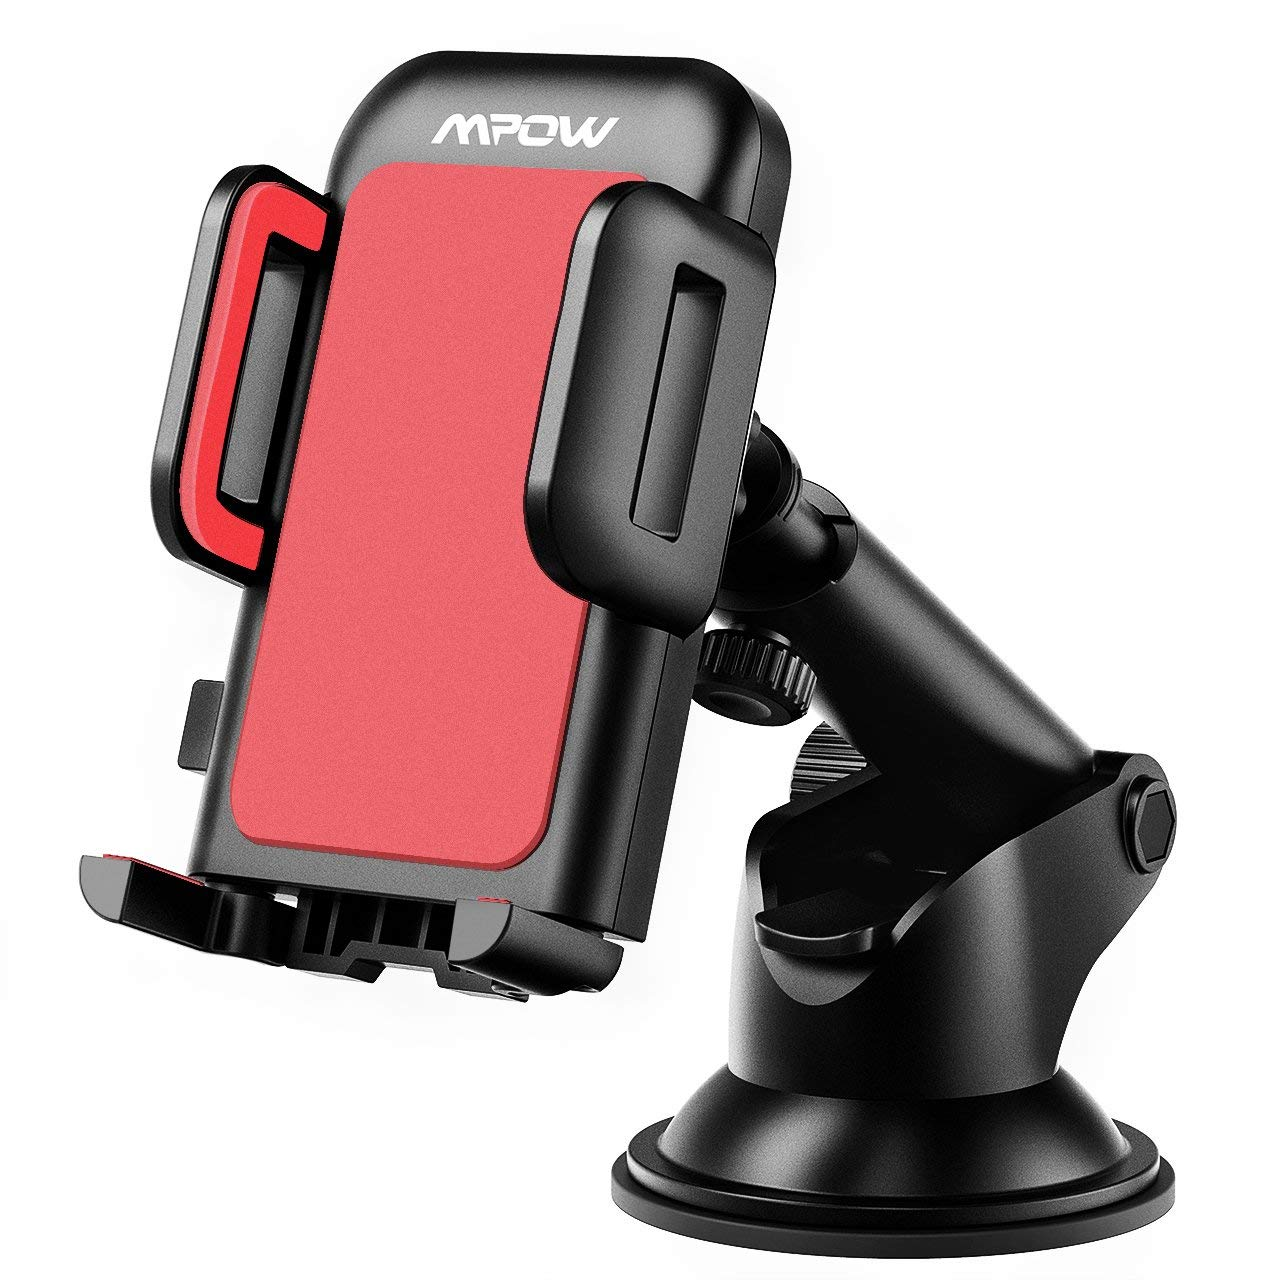 Mpow Car Phone Mount, Dashboard Car Phone Holder, Washable Strong Sticky Gel Pad with One-Touch Design Compatible iPhone Xs,XS MAX,XR,X,8,8Plus,7,7Plus,6,6Plus, Galaxy S7,8,9,10, Google Nexus, Red by Mpow